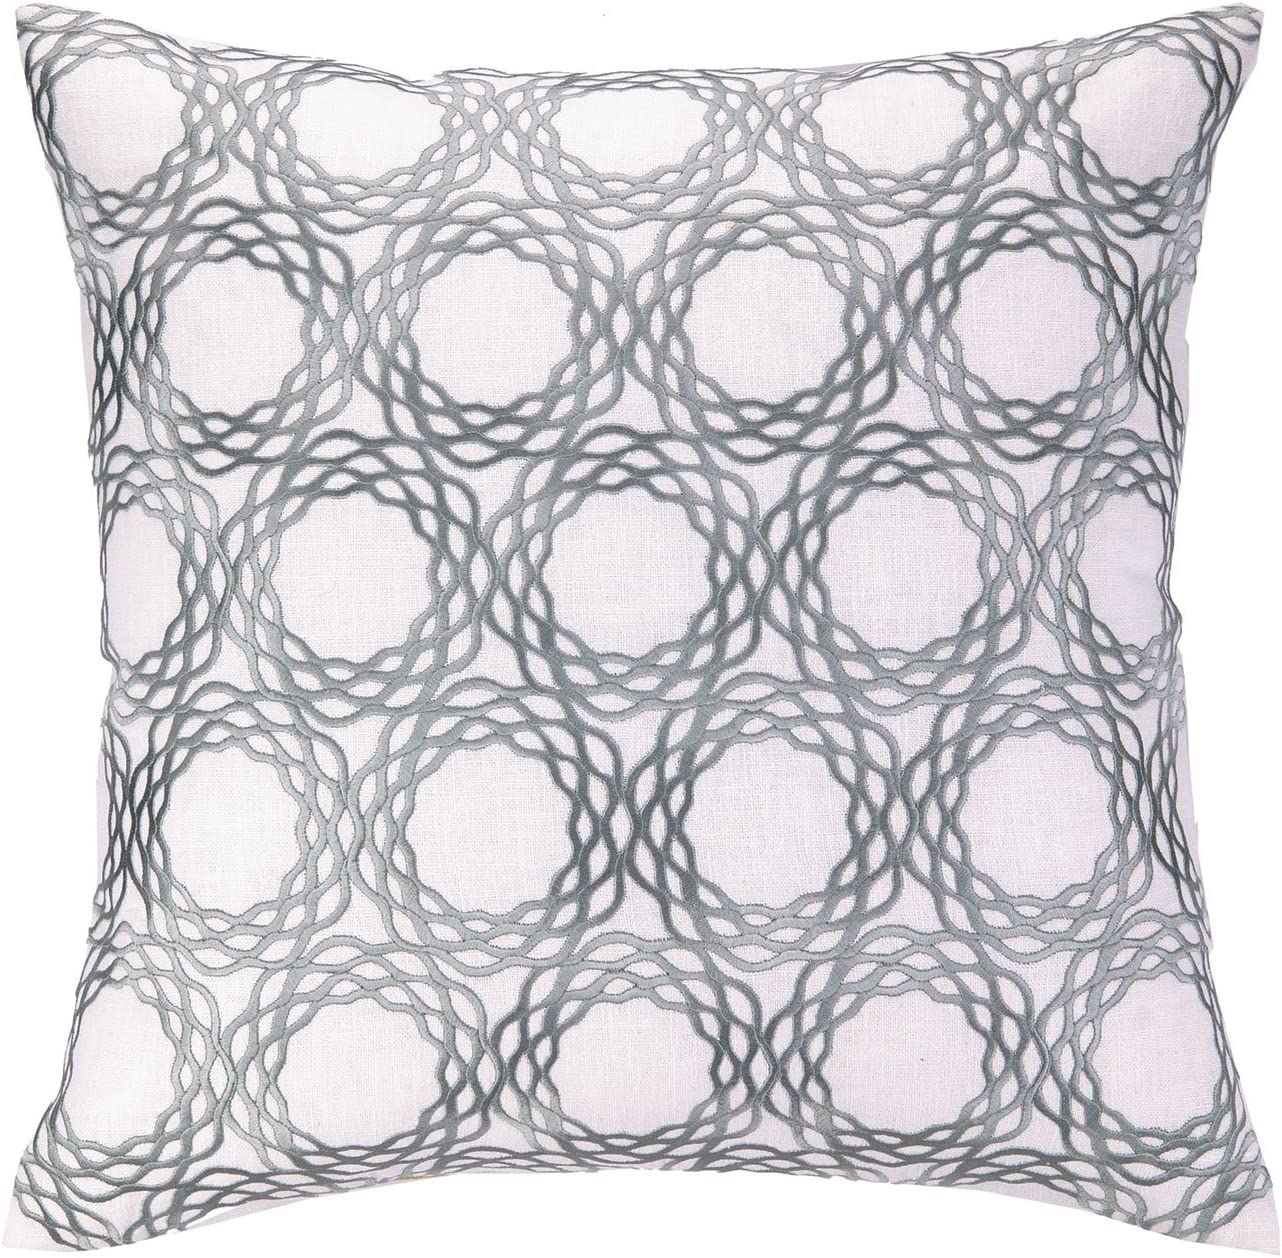 Cococozy Oxford Embroidery Linen Pillow Black